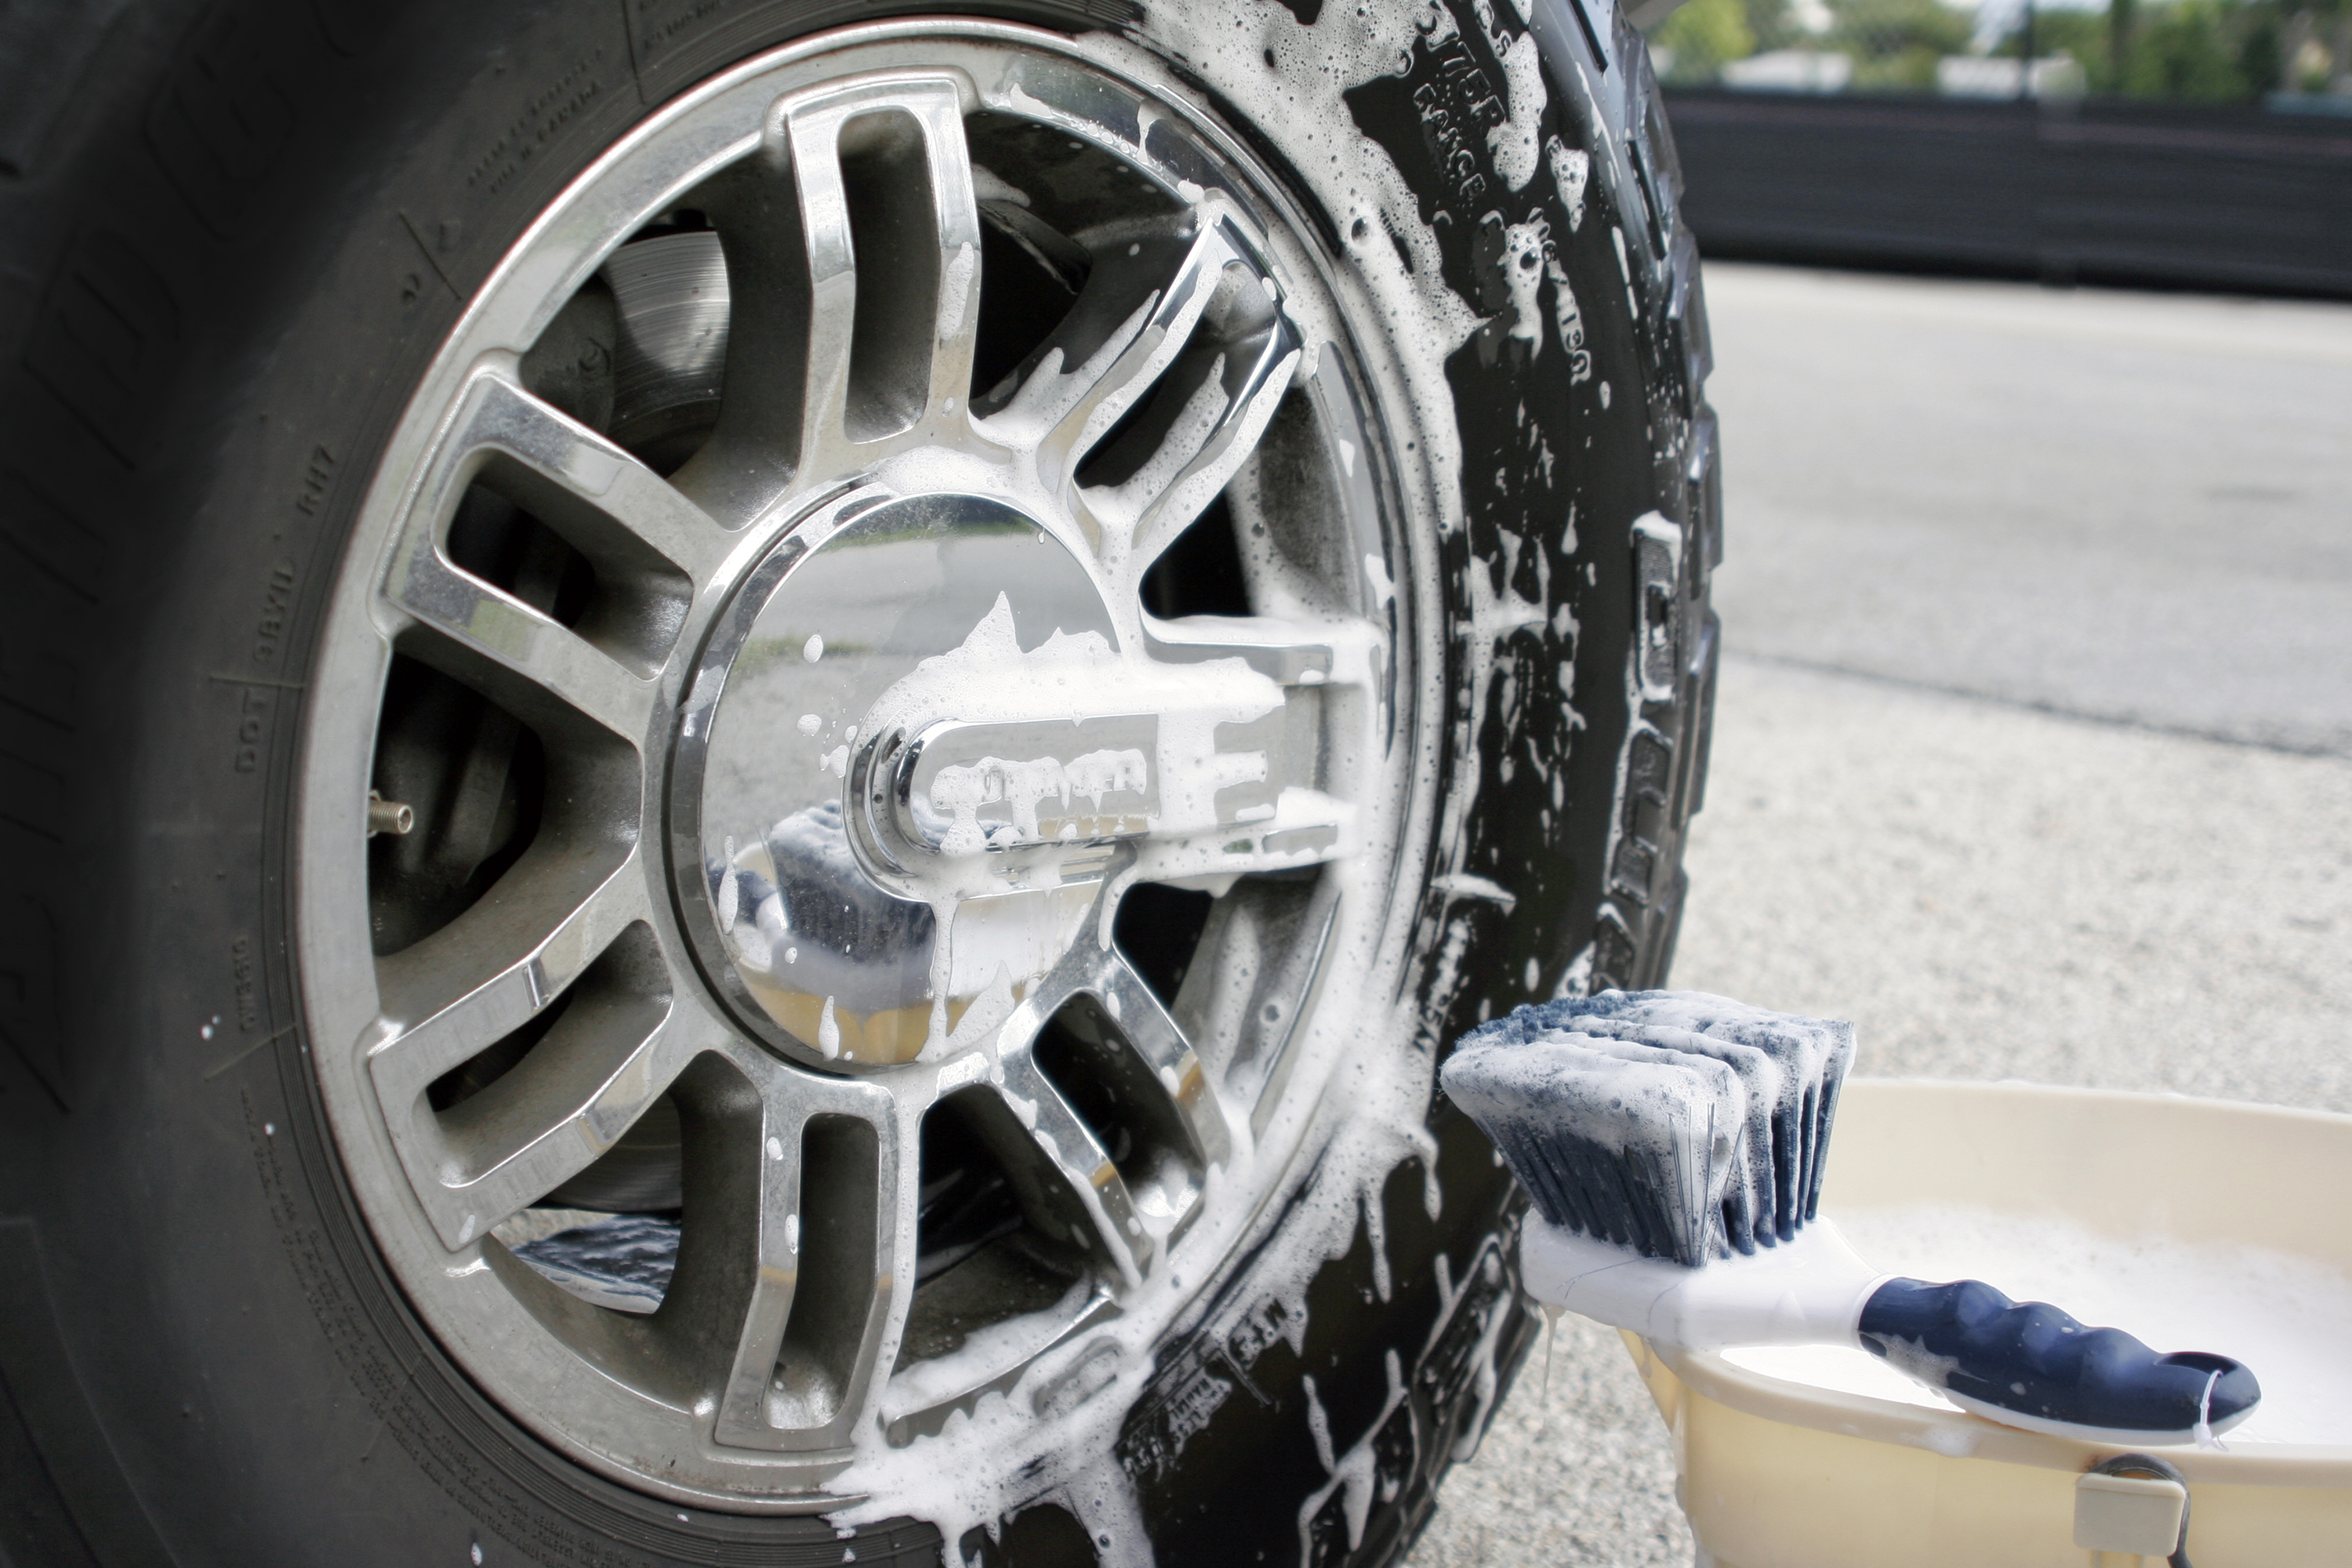 Most rims that have just a little bit of rust on them need nothing more than a scrub brush and hot water with degreasing soap to get them clean